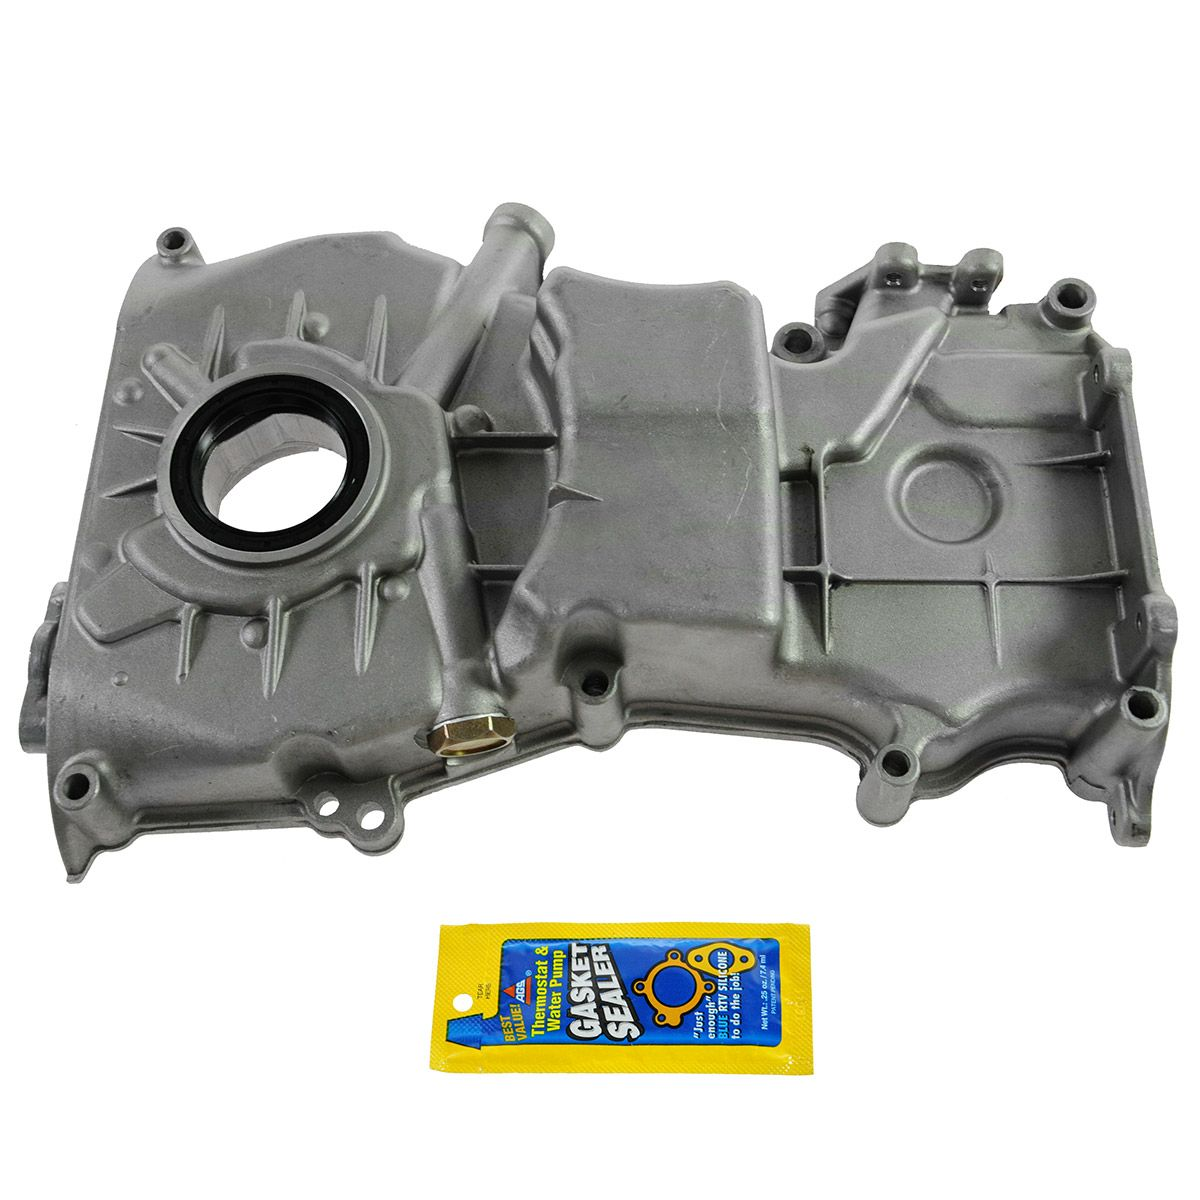 1992 Nissan Stanza Camshaft: Engine Timing Chain Cover For 90-95 Nissan Stanza Axxess 2